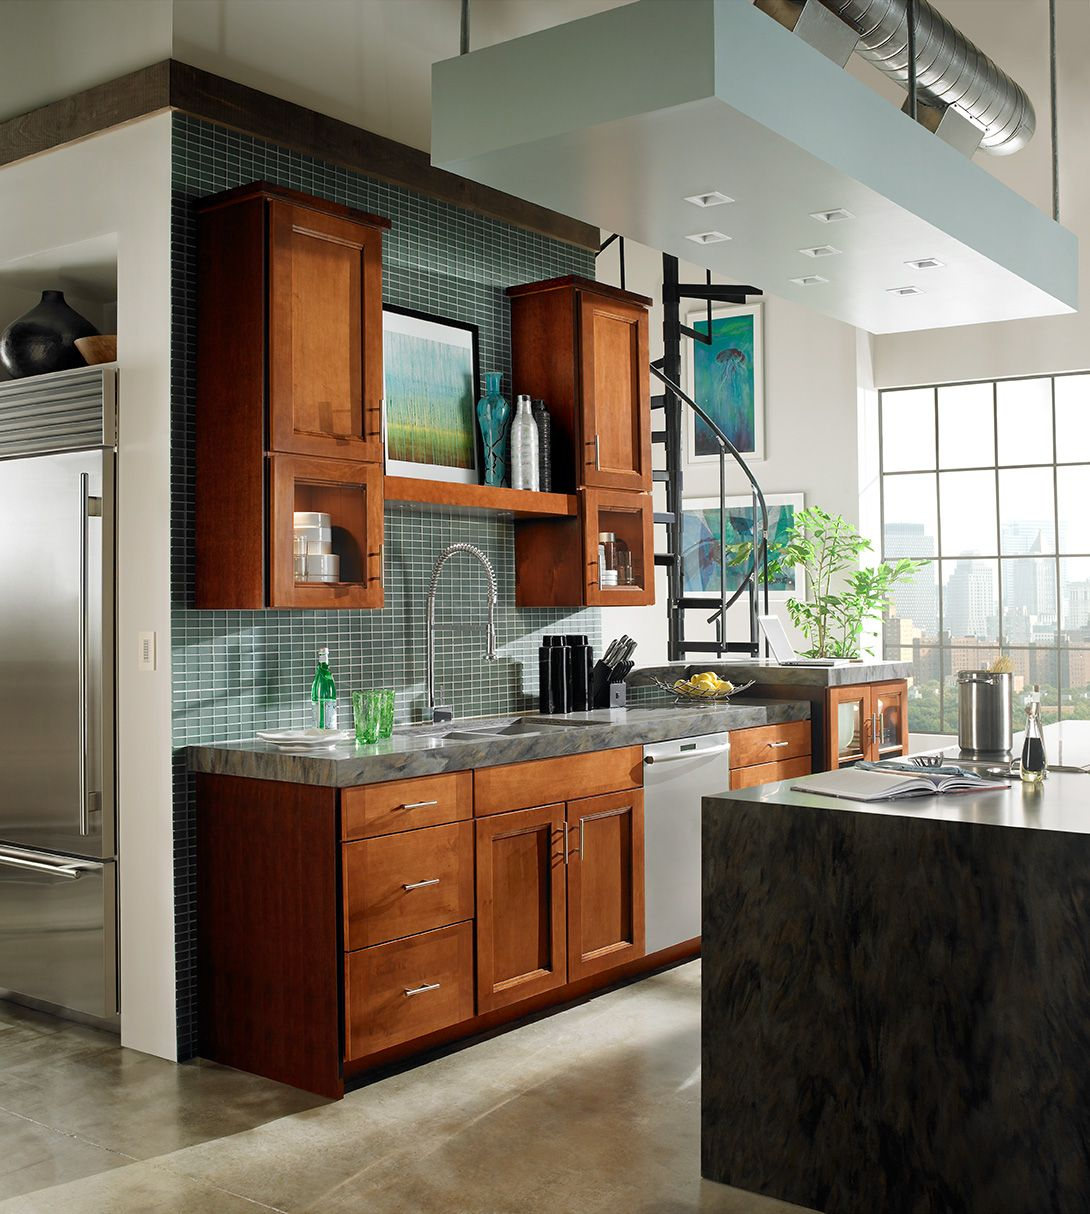 Free estimate kitchen cabinets - Time To Remodel Your Kitchen Call American Construction Plumbing In Fort Myers Fl For